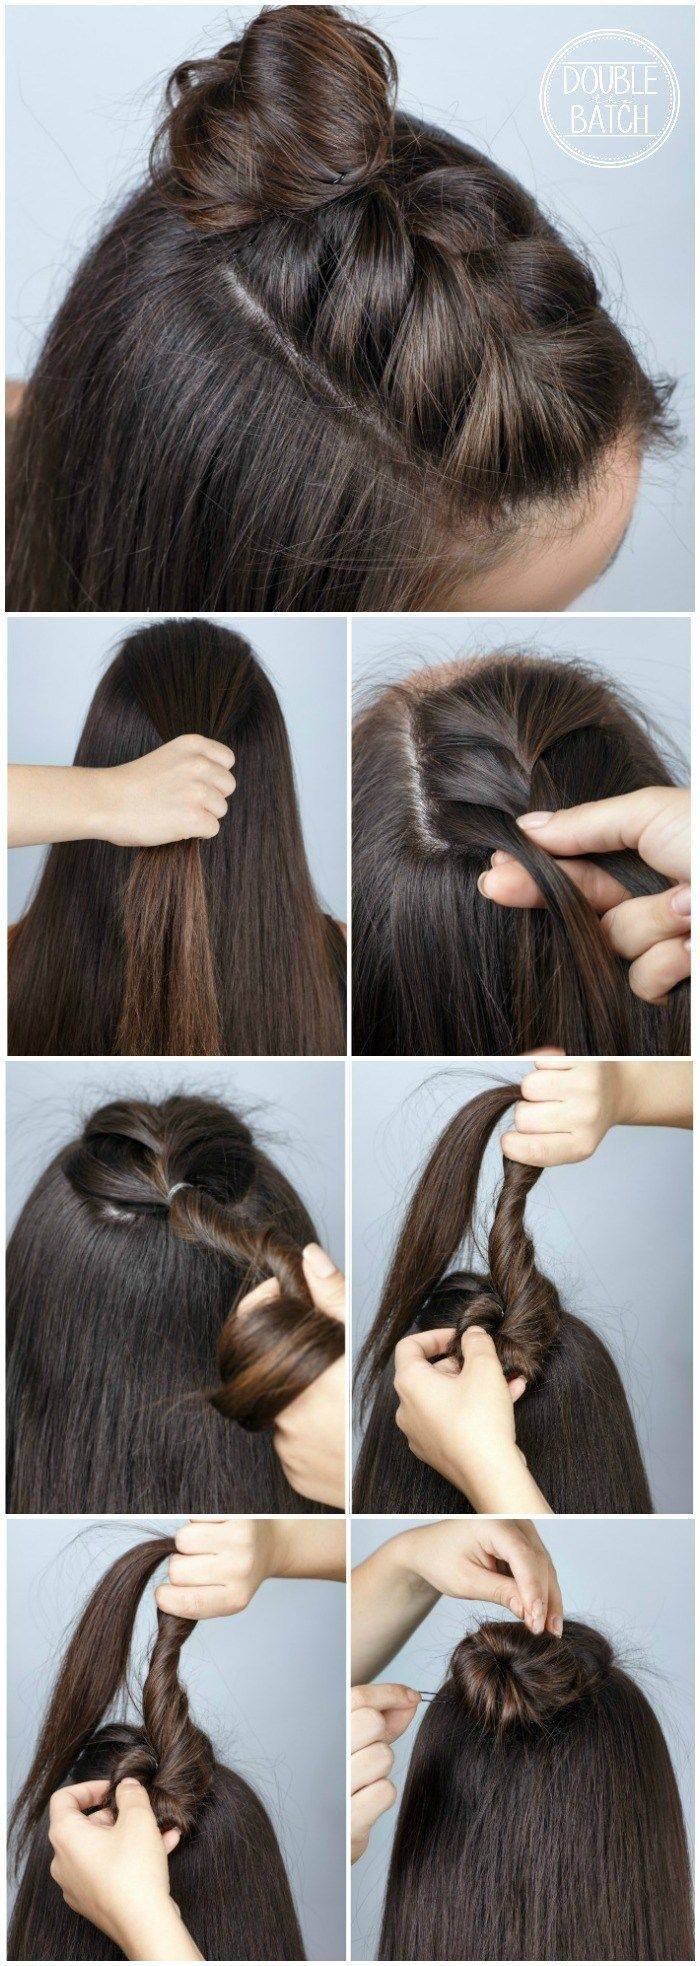 best frisur images on pinterest cute hairstyles hair ideas and